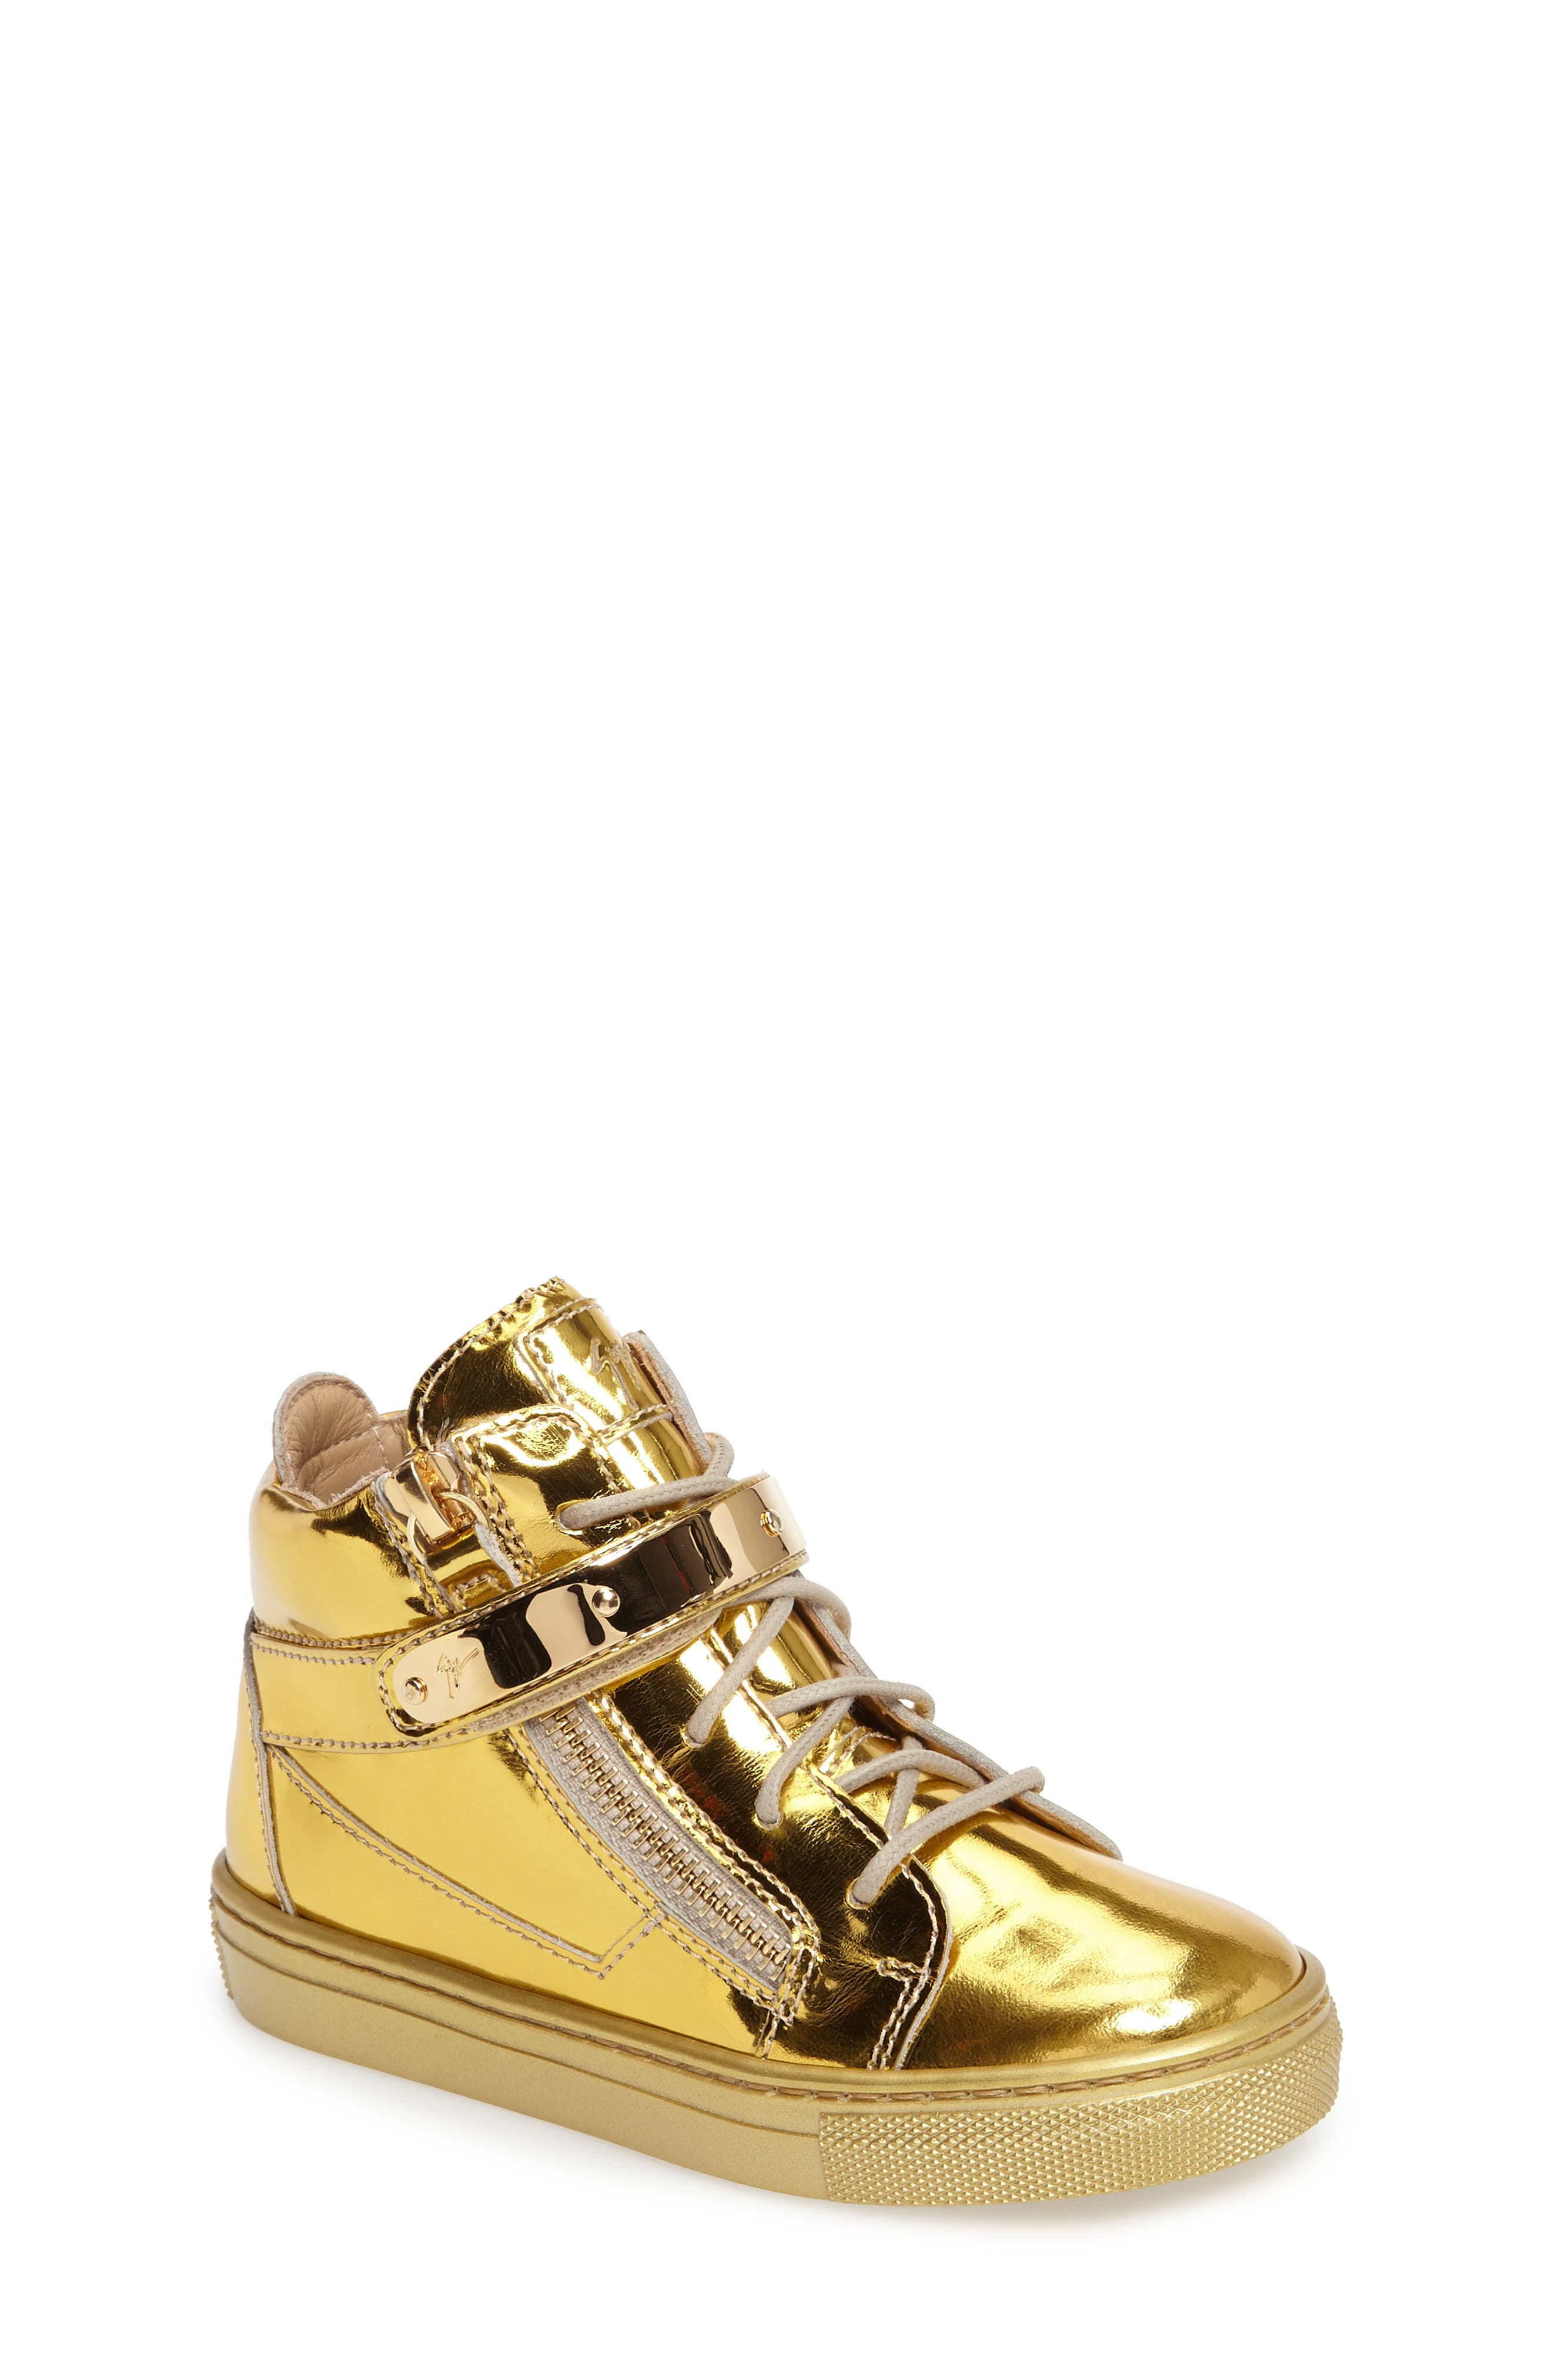 High Top Sneaker,                         Main,                         color, Gold